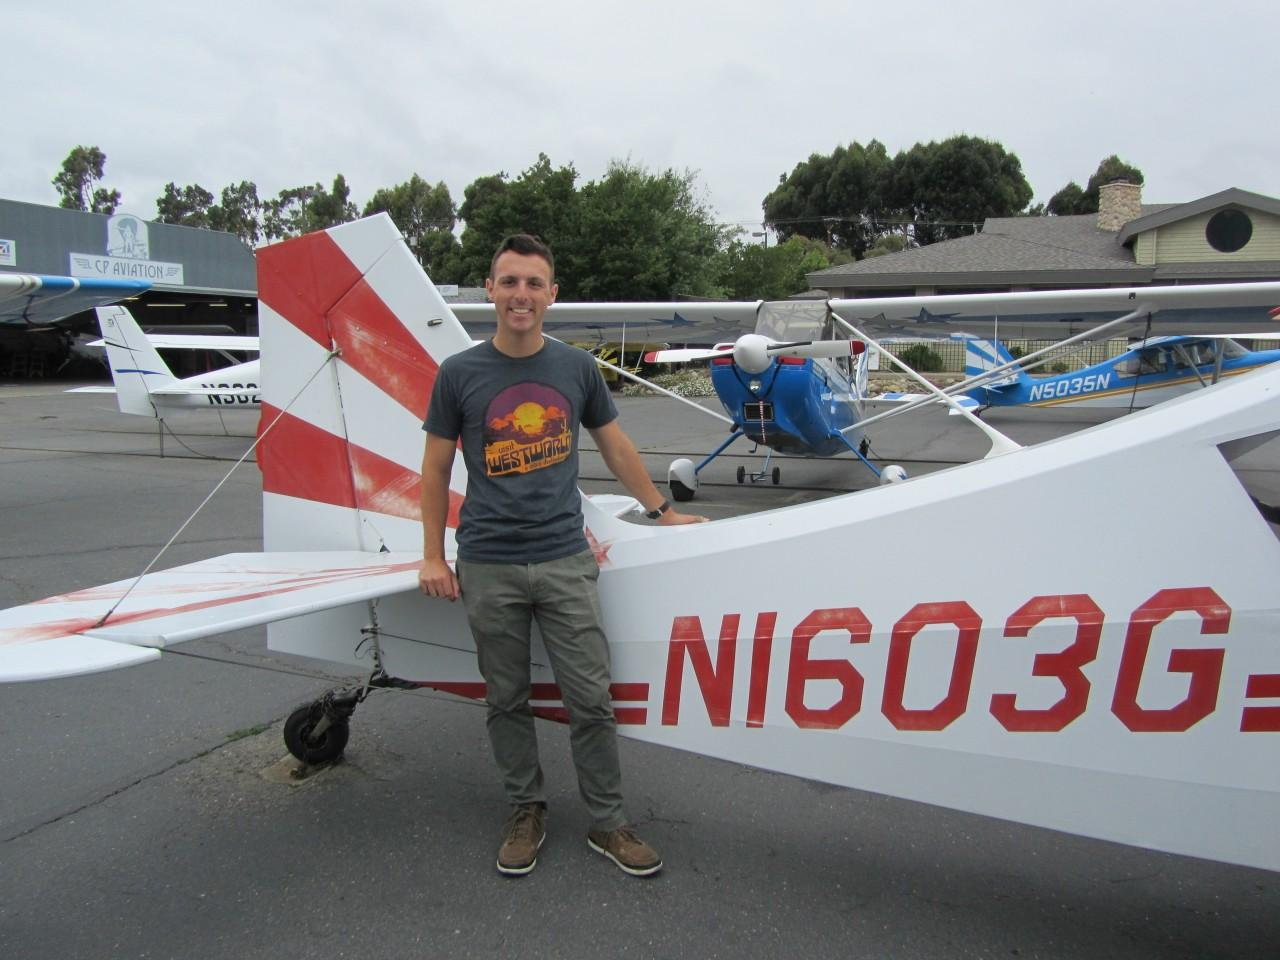 Tailwheel Endorsement - Chase Standage